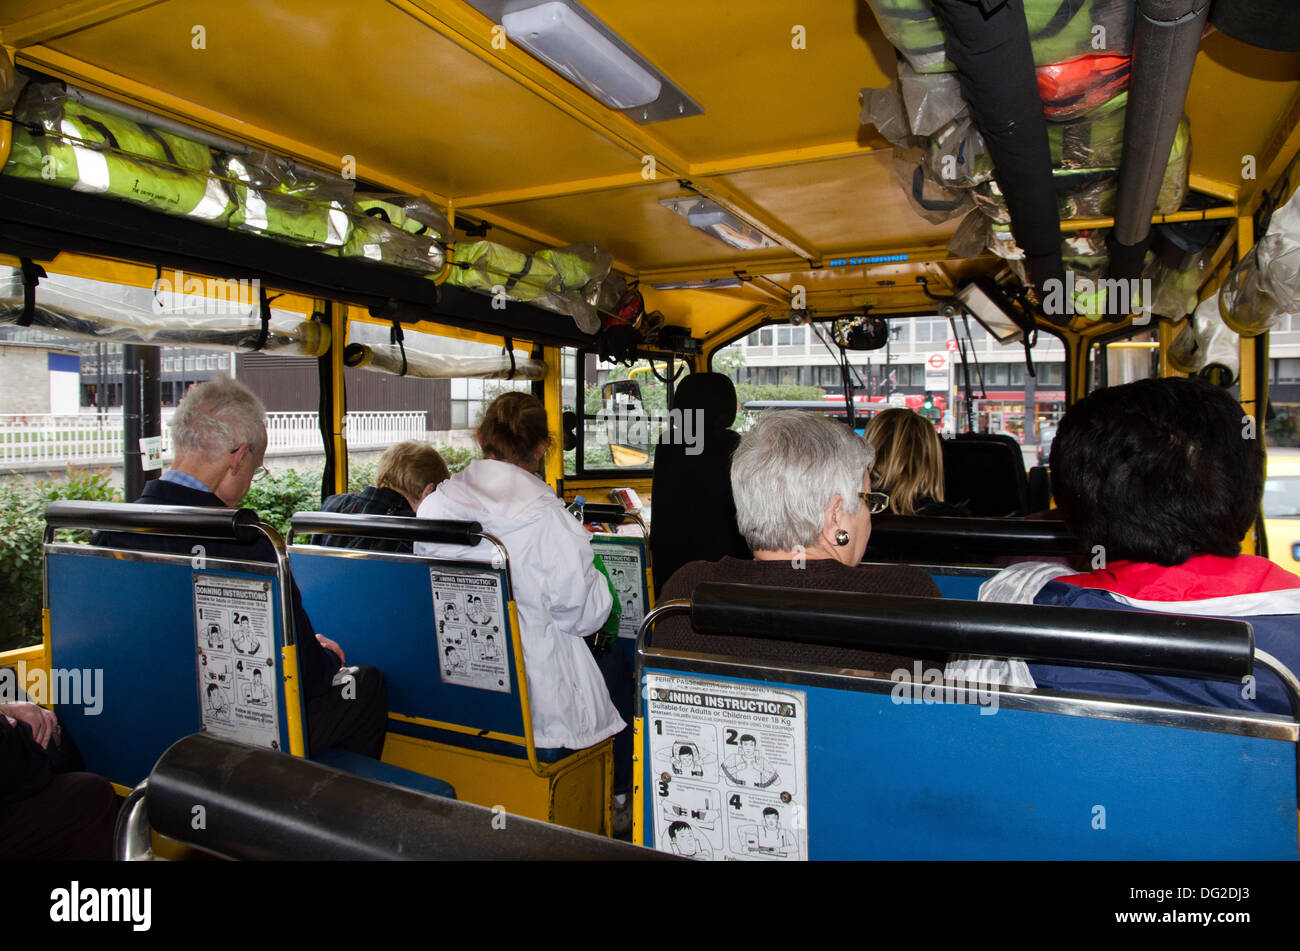 inside of london duck tours amphibious vehicle desdemona with tourists - Stock Image